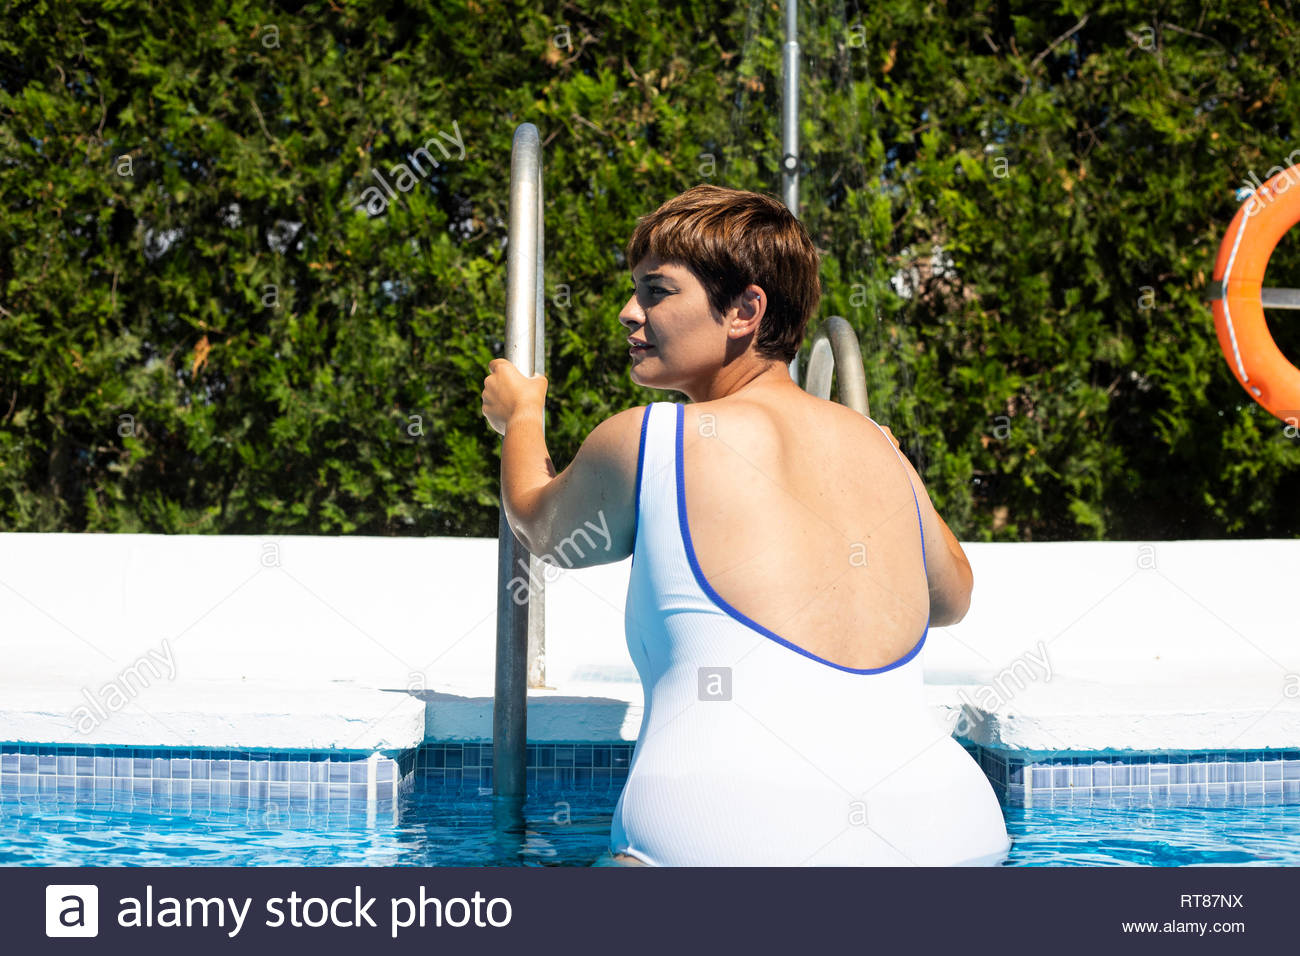 Back view of plump young woman leaving swimming pool - Stock Image